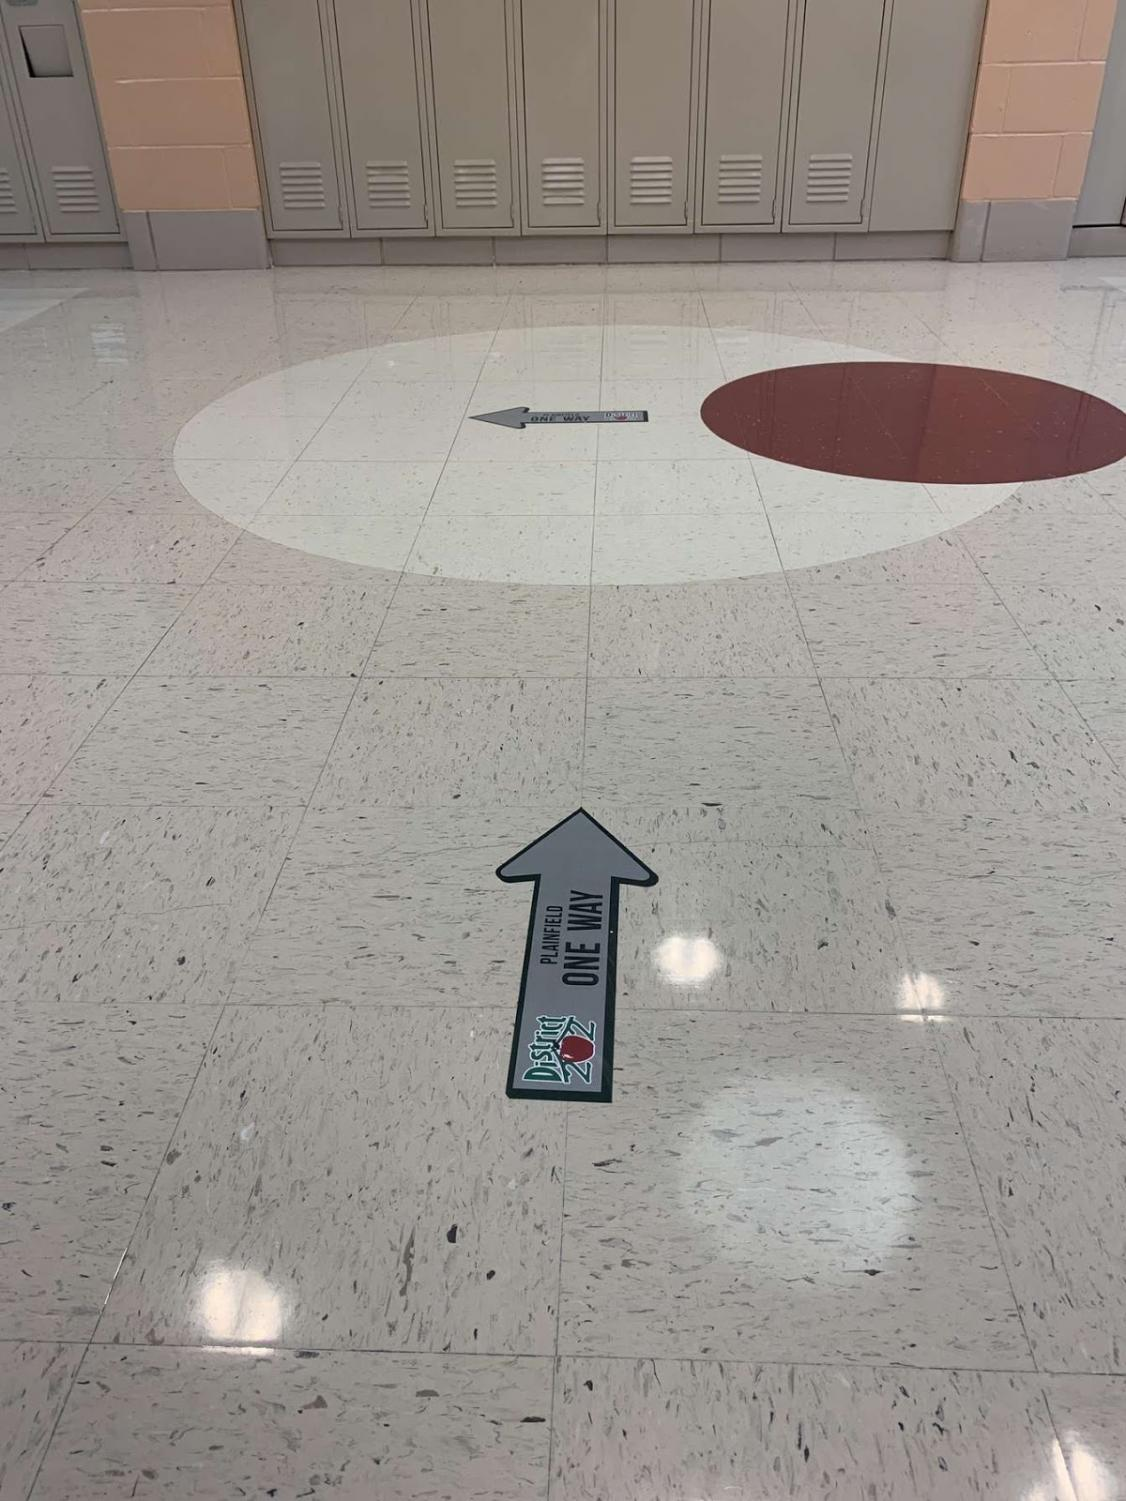 Directional arrows in the hallways to encourage social distancing.